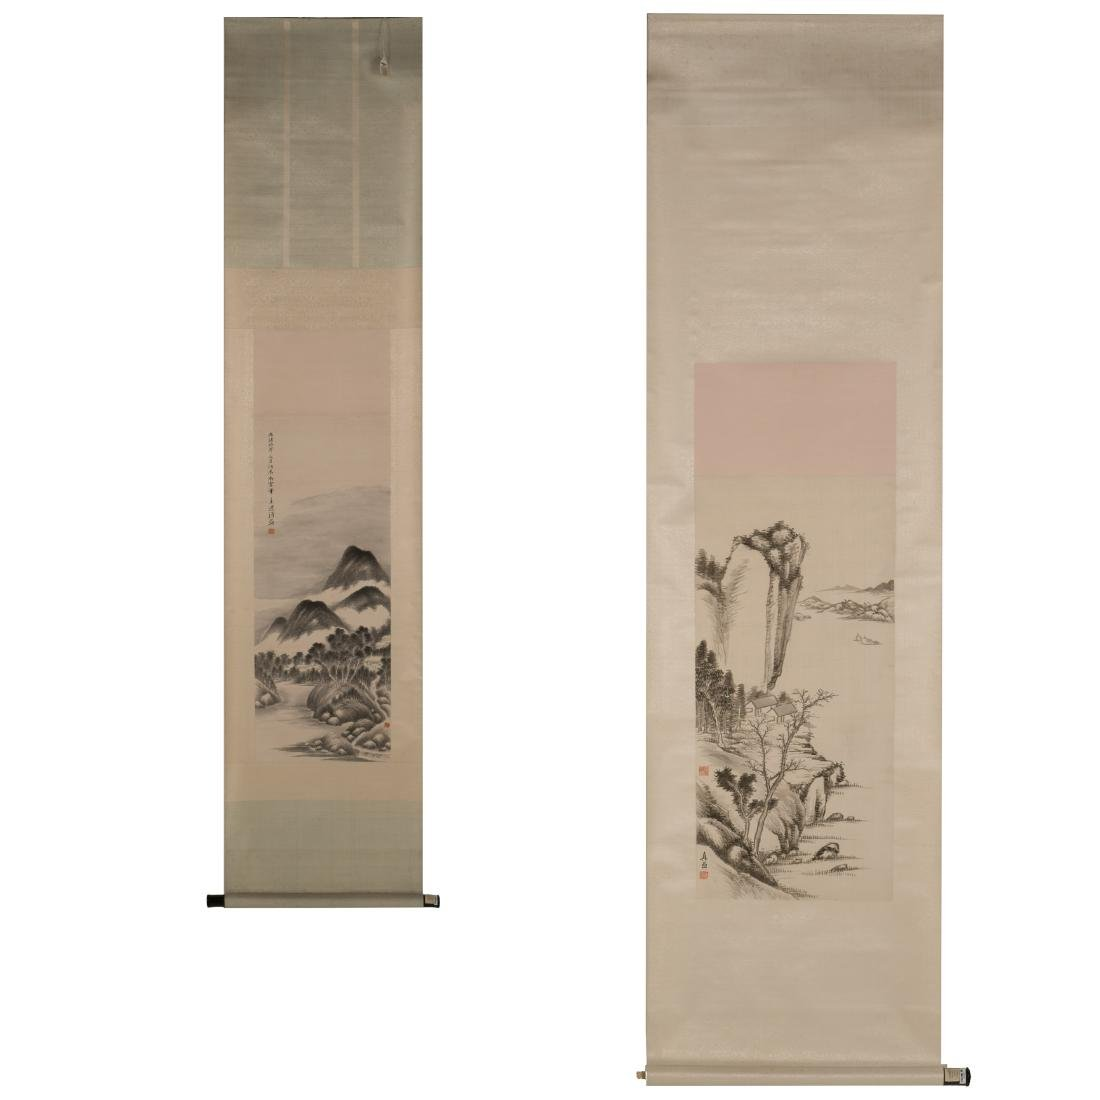 SET OF 2 QING DYNASTY SCROLL PAINTINGS, CA. 1903